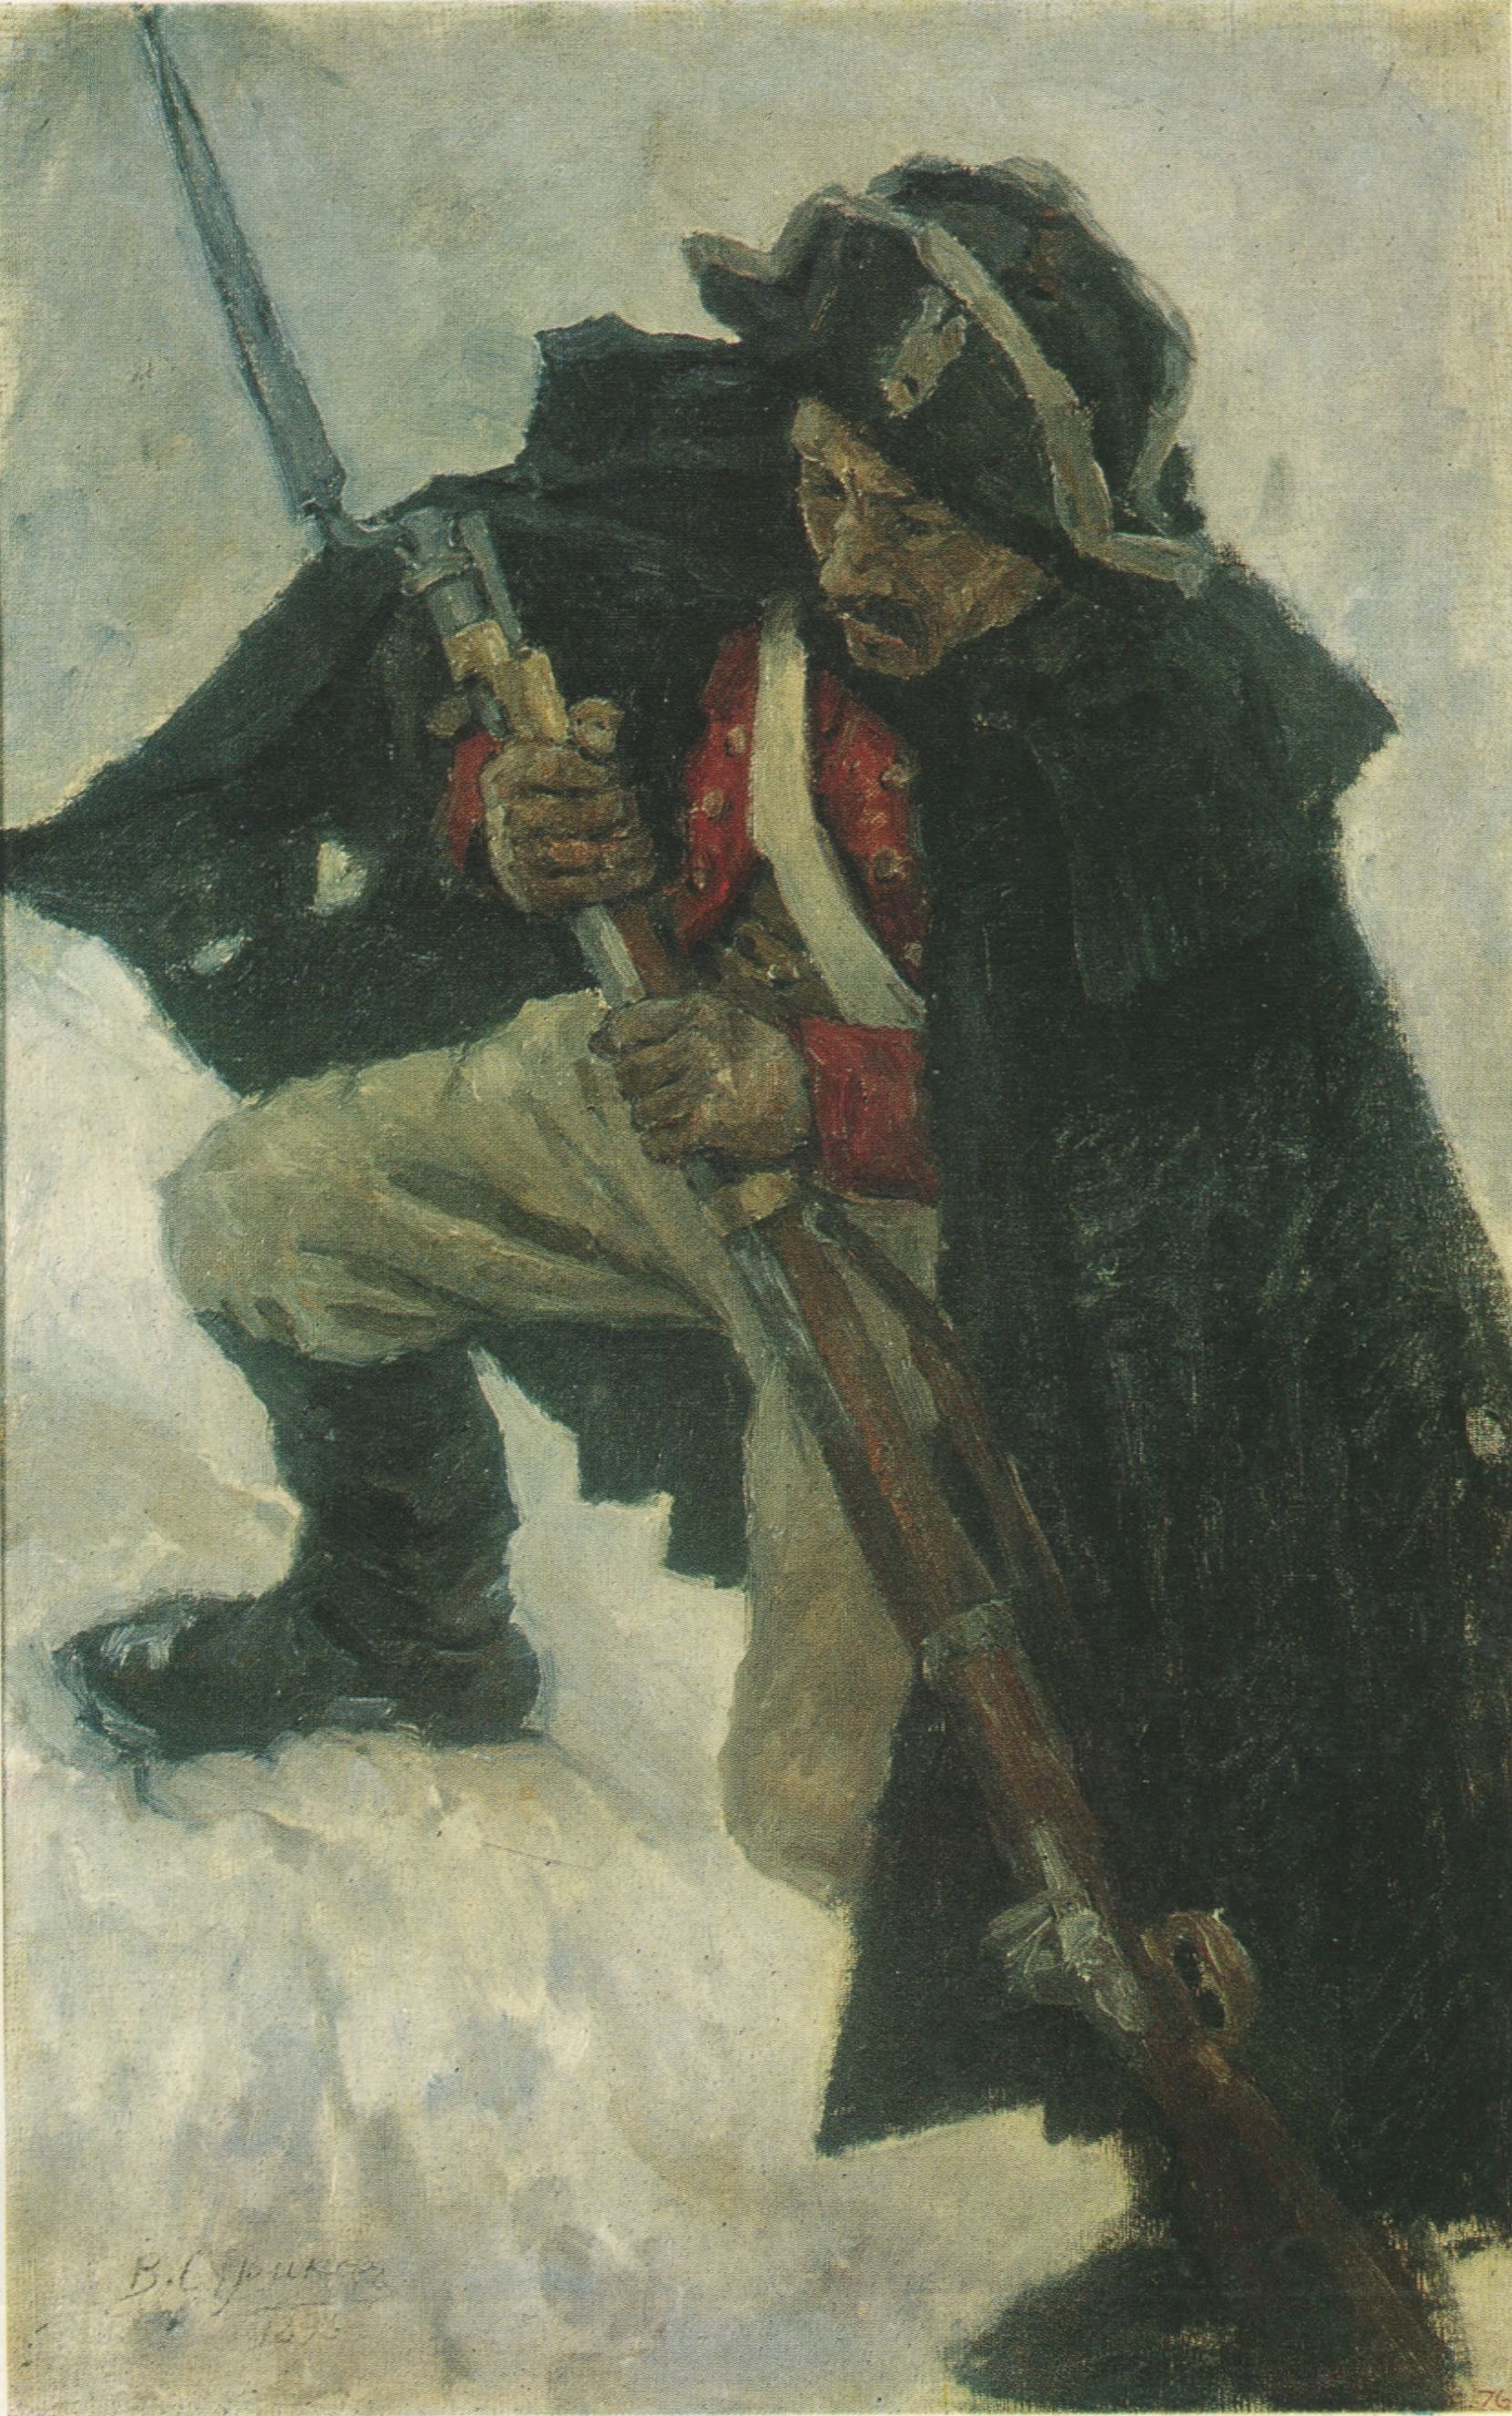 68. Солдат с ружьем. 1898 (Soldier with a Gun. 1898)